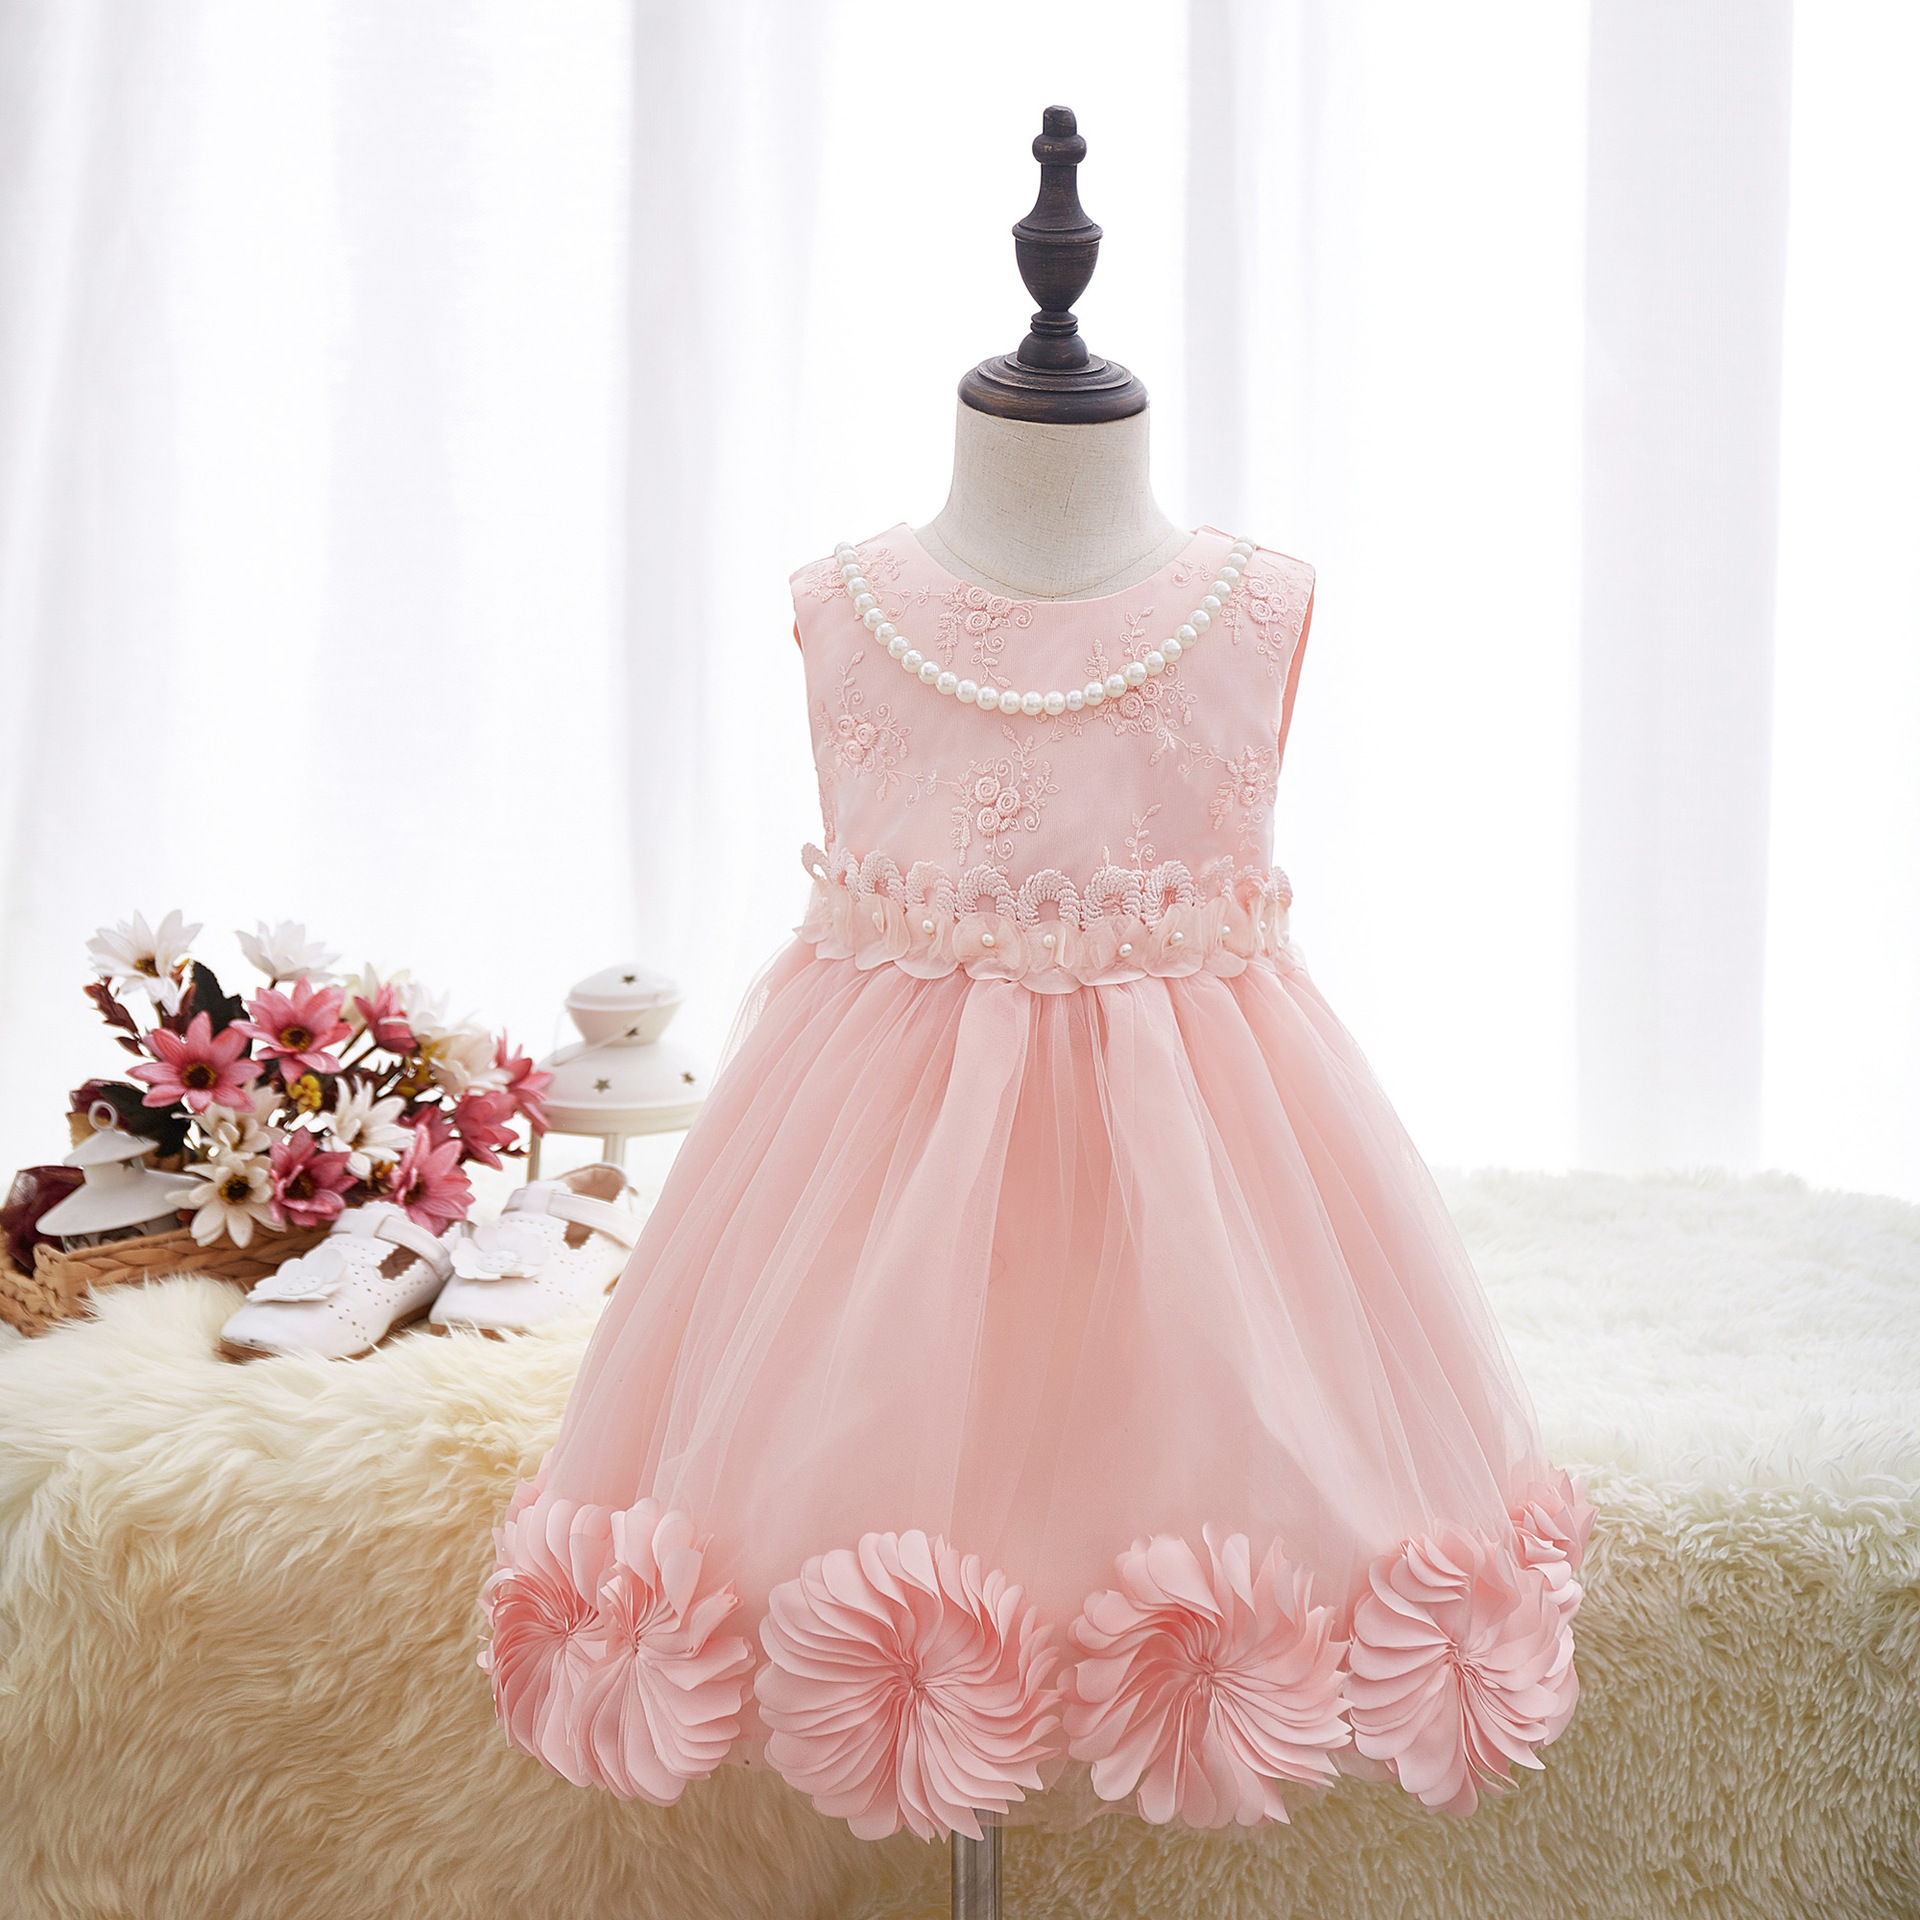 Baby Girls Party Dress 2017 New Arrival Summer Flower Birthday Prom For 3-8Years Kids Sleeveless Princess Dress Kids Clothing distrressed girls dress summer 2016 new arrival pink ripped denim dress for kids sleeveless solid casual girls overalls dress